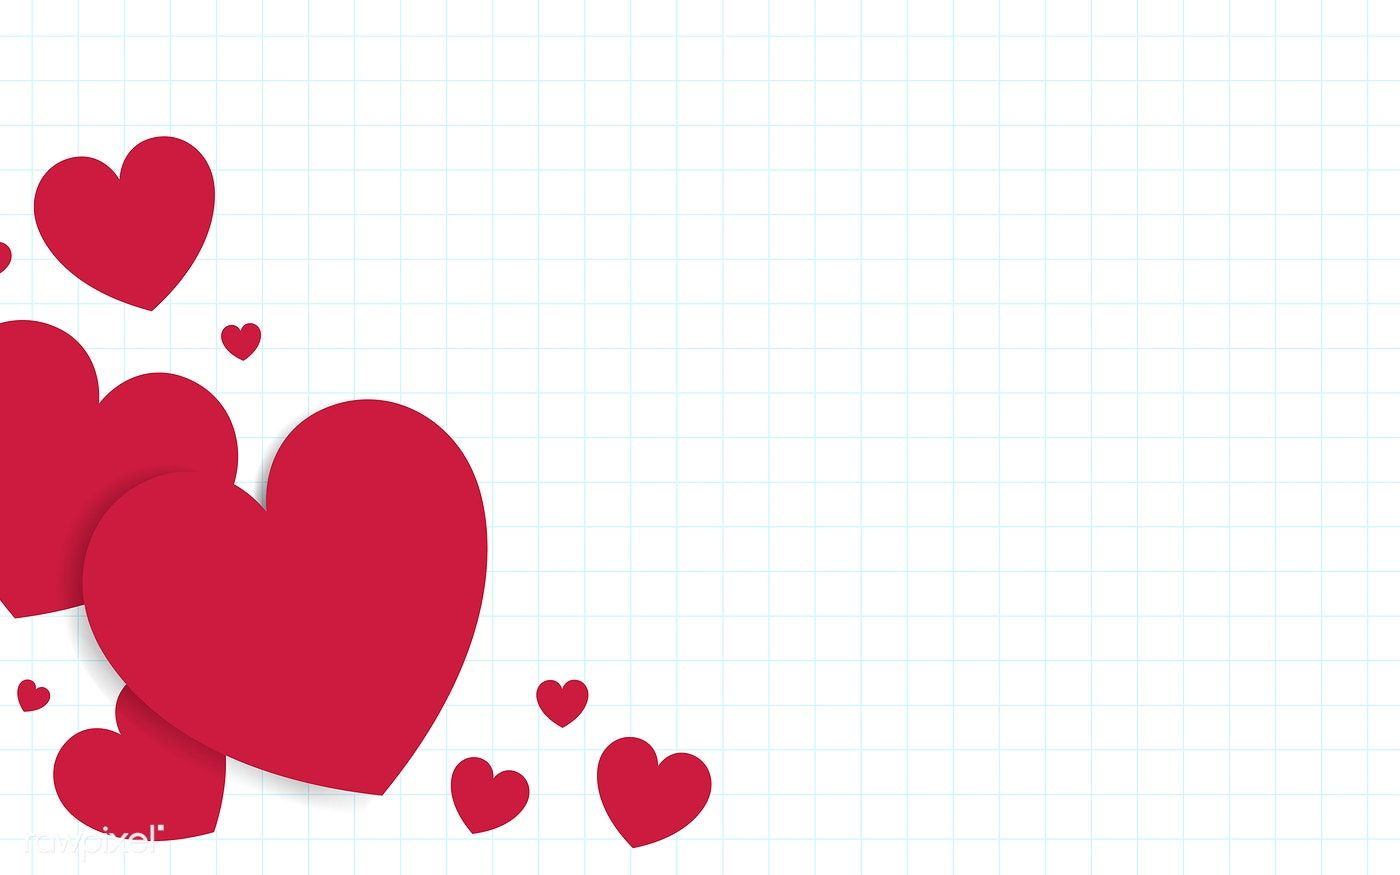 Red Hearts Background Design Vector Free Image By Rawpixel Com Kappy Kappy Background Design Vector Pink Heart Background Heart Background